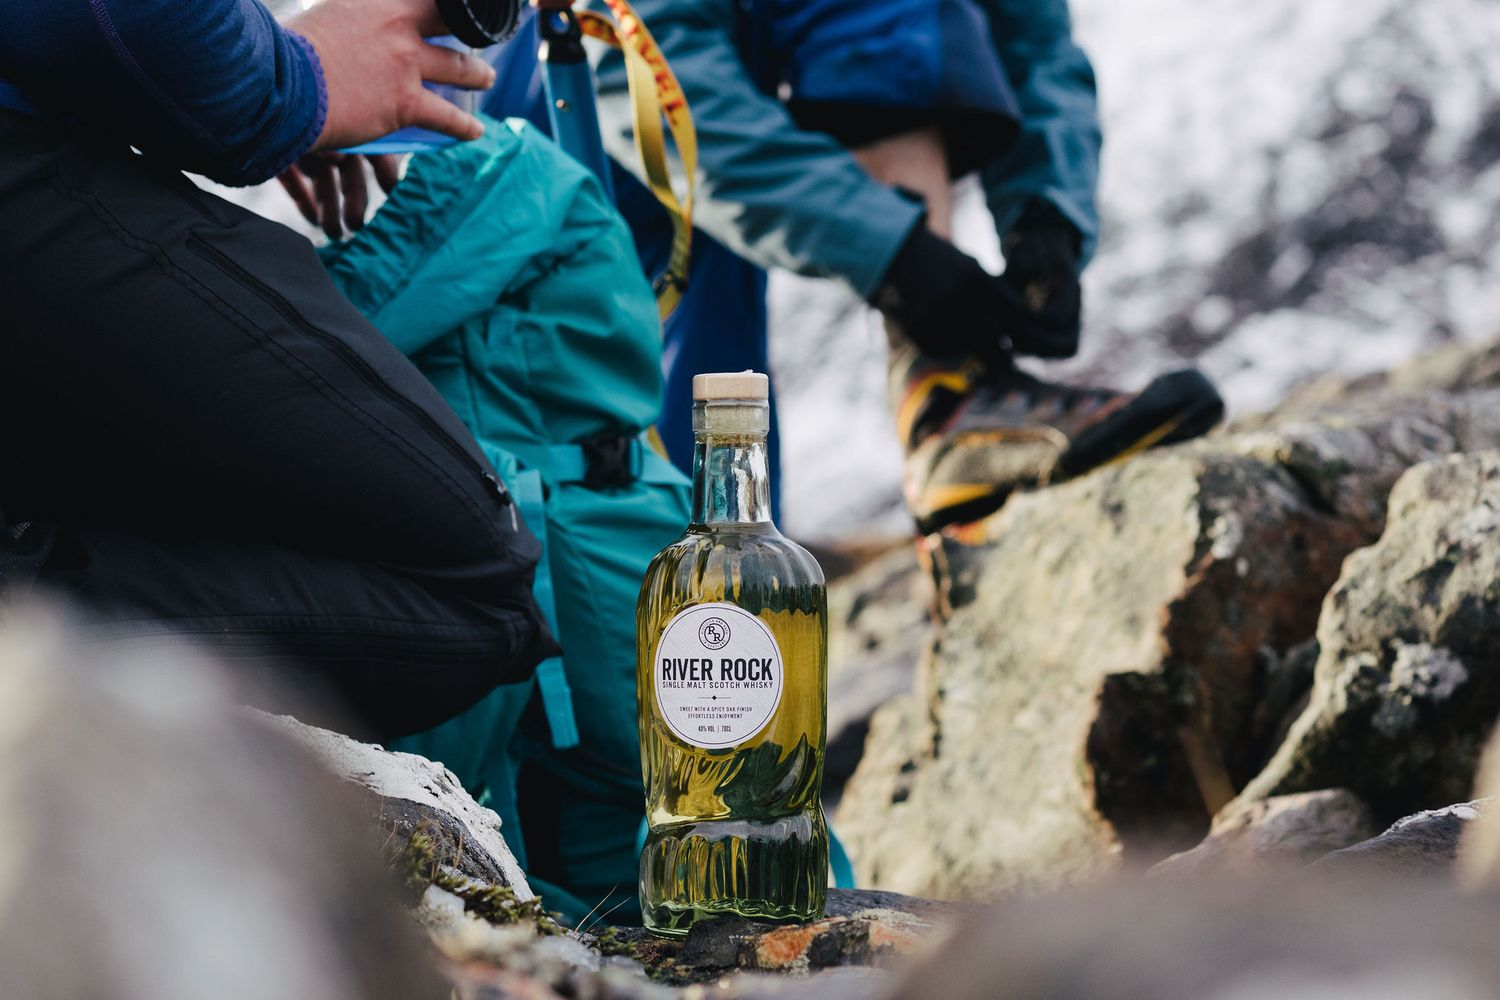 River Rock Whisky on a Scottish mountaineering hiking adventure in the Highlands product shoot